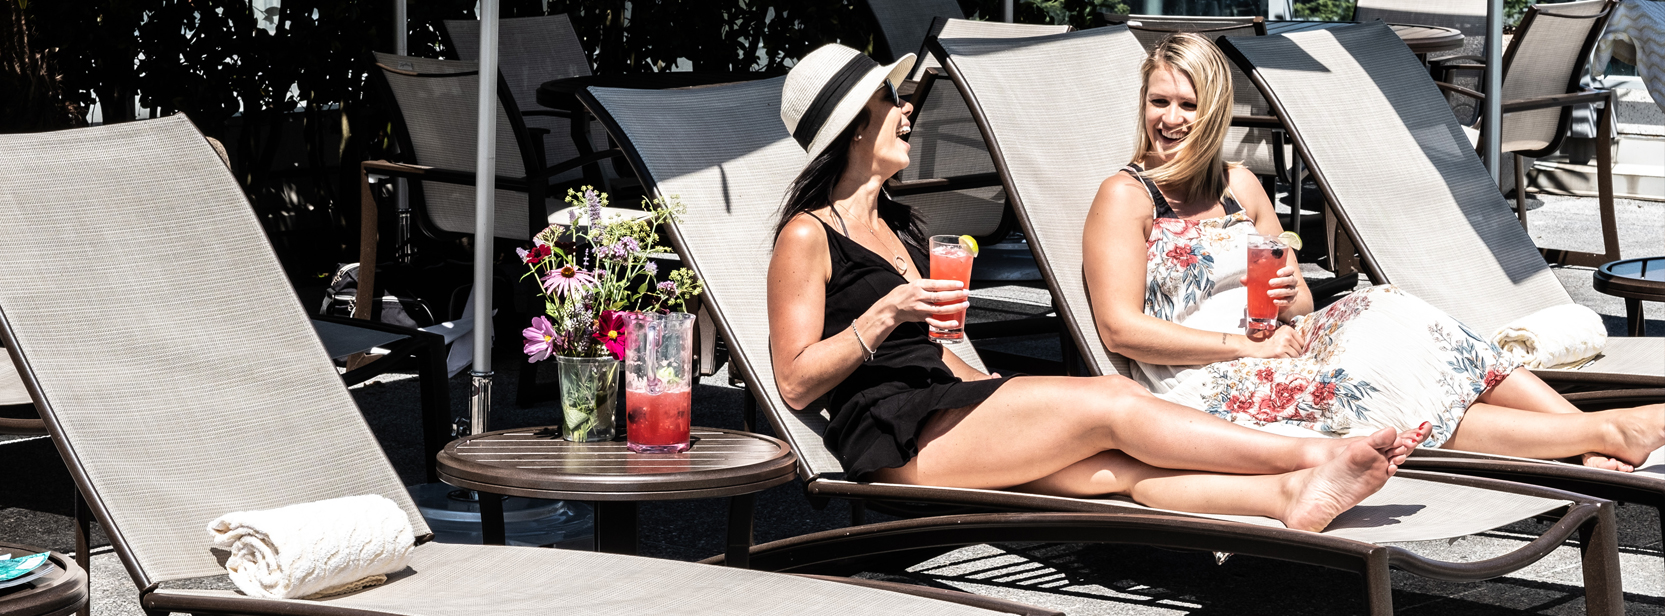 Two women sharing a laugh on pool lounge chairs